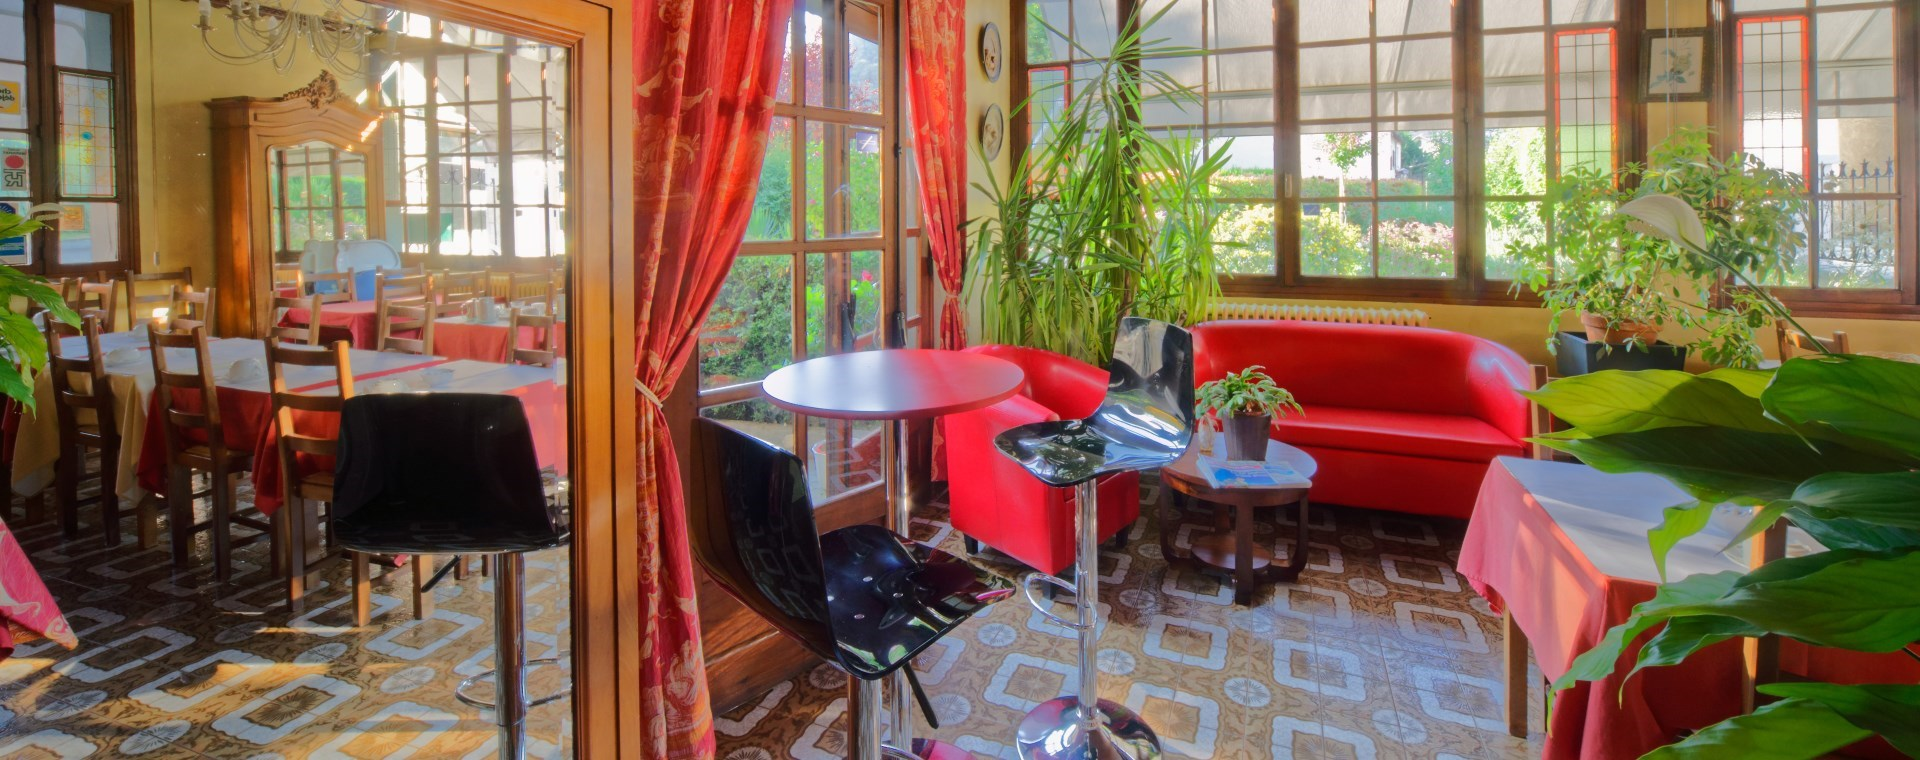 Entry of the hotel du Parc at la Rochette small breakfast room side